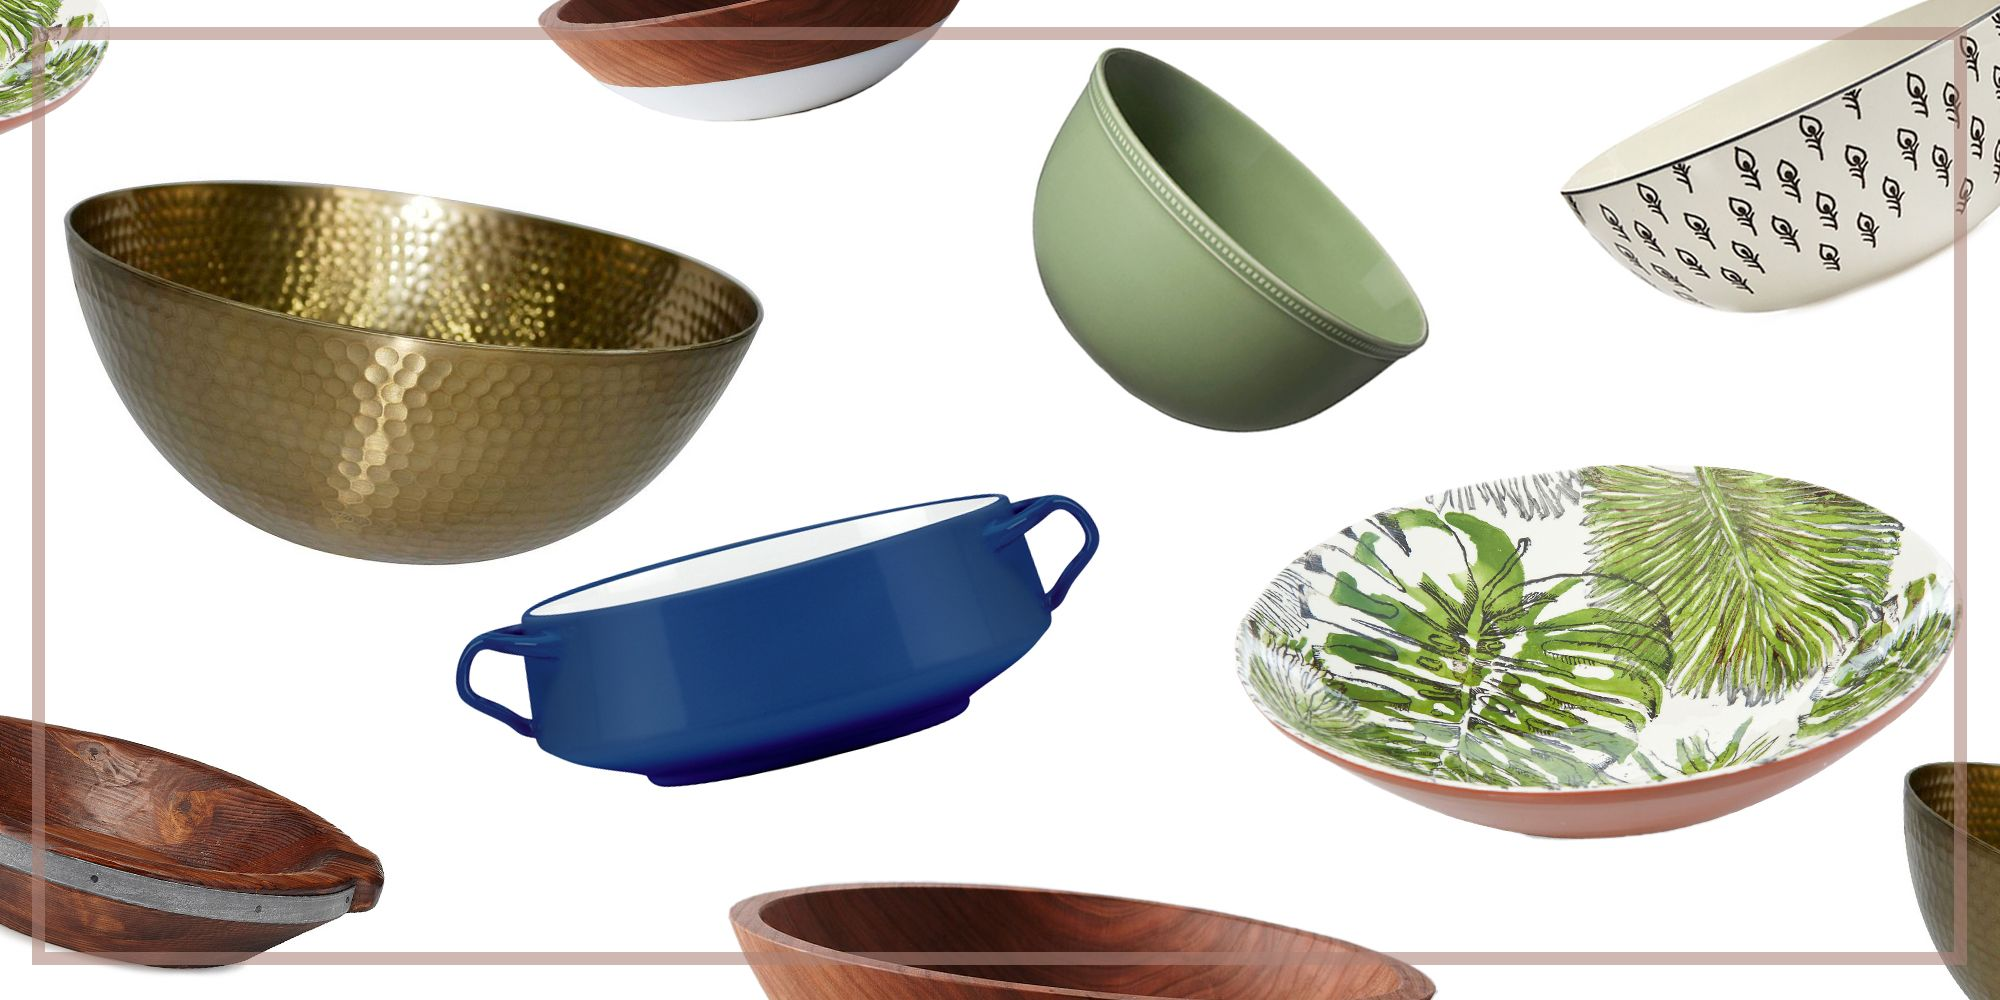 14 Best Serving Bowls In 2018 Decorative Serving Bowls For Soups And Salads